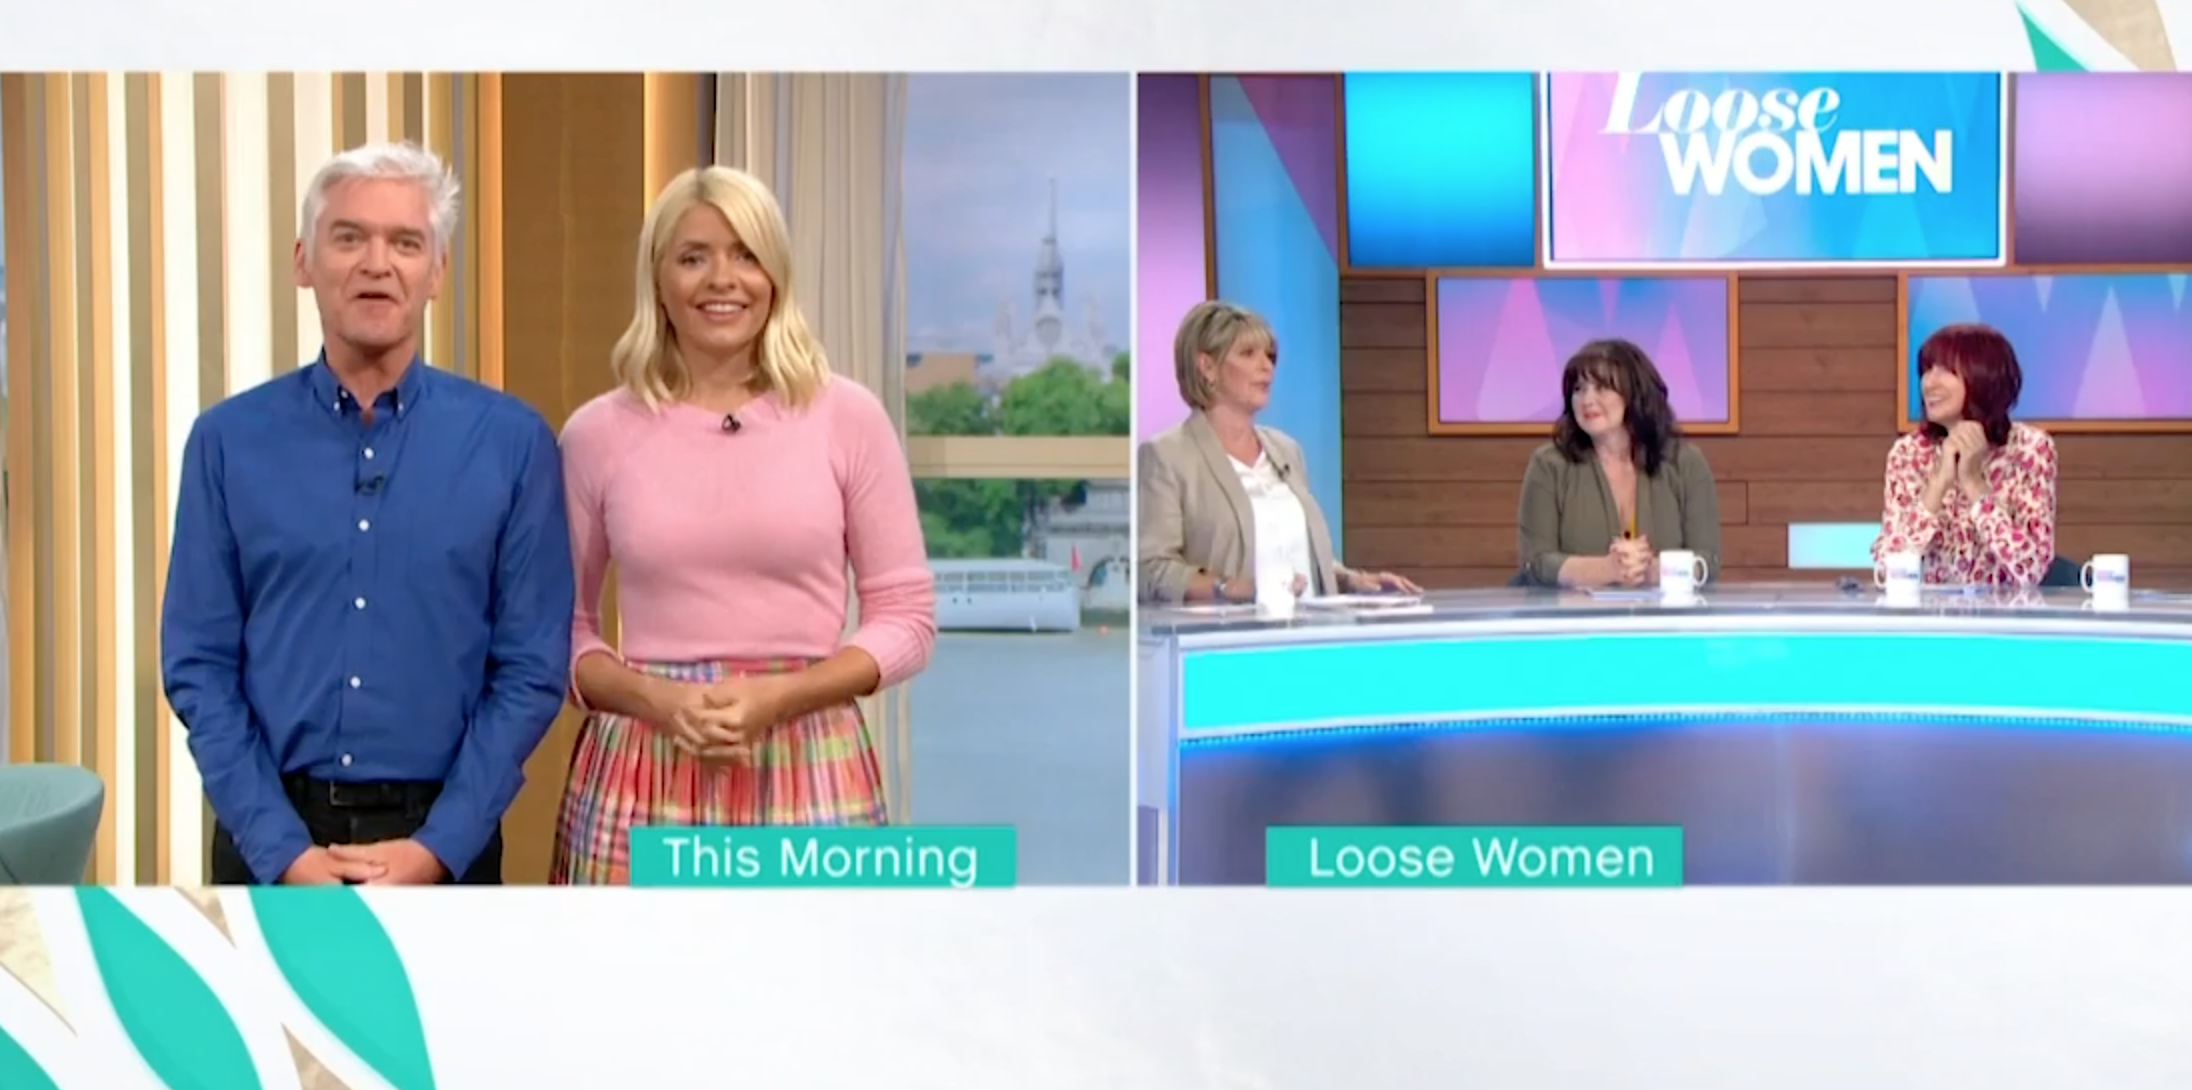 Fans speculate that Ruth Langsford complained after Phillip Schofield interrupted her live on air